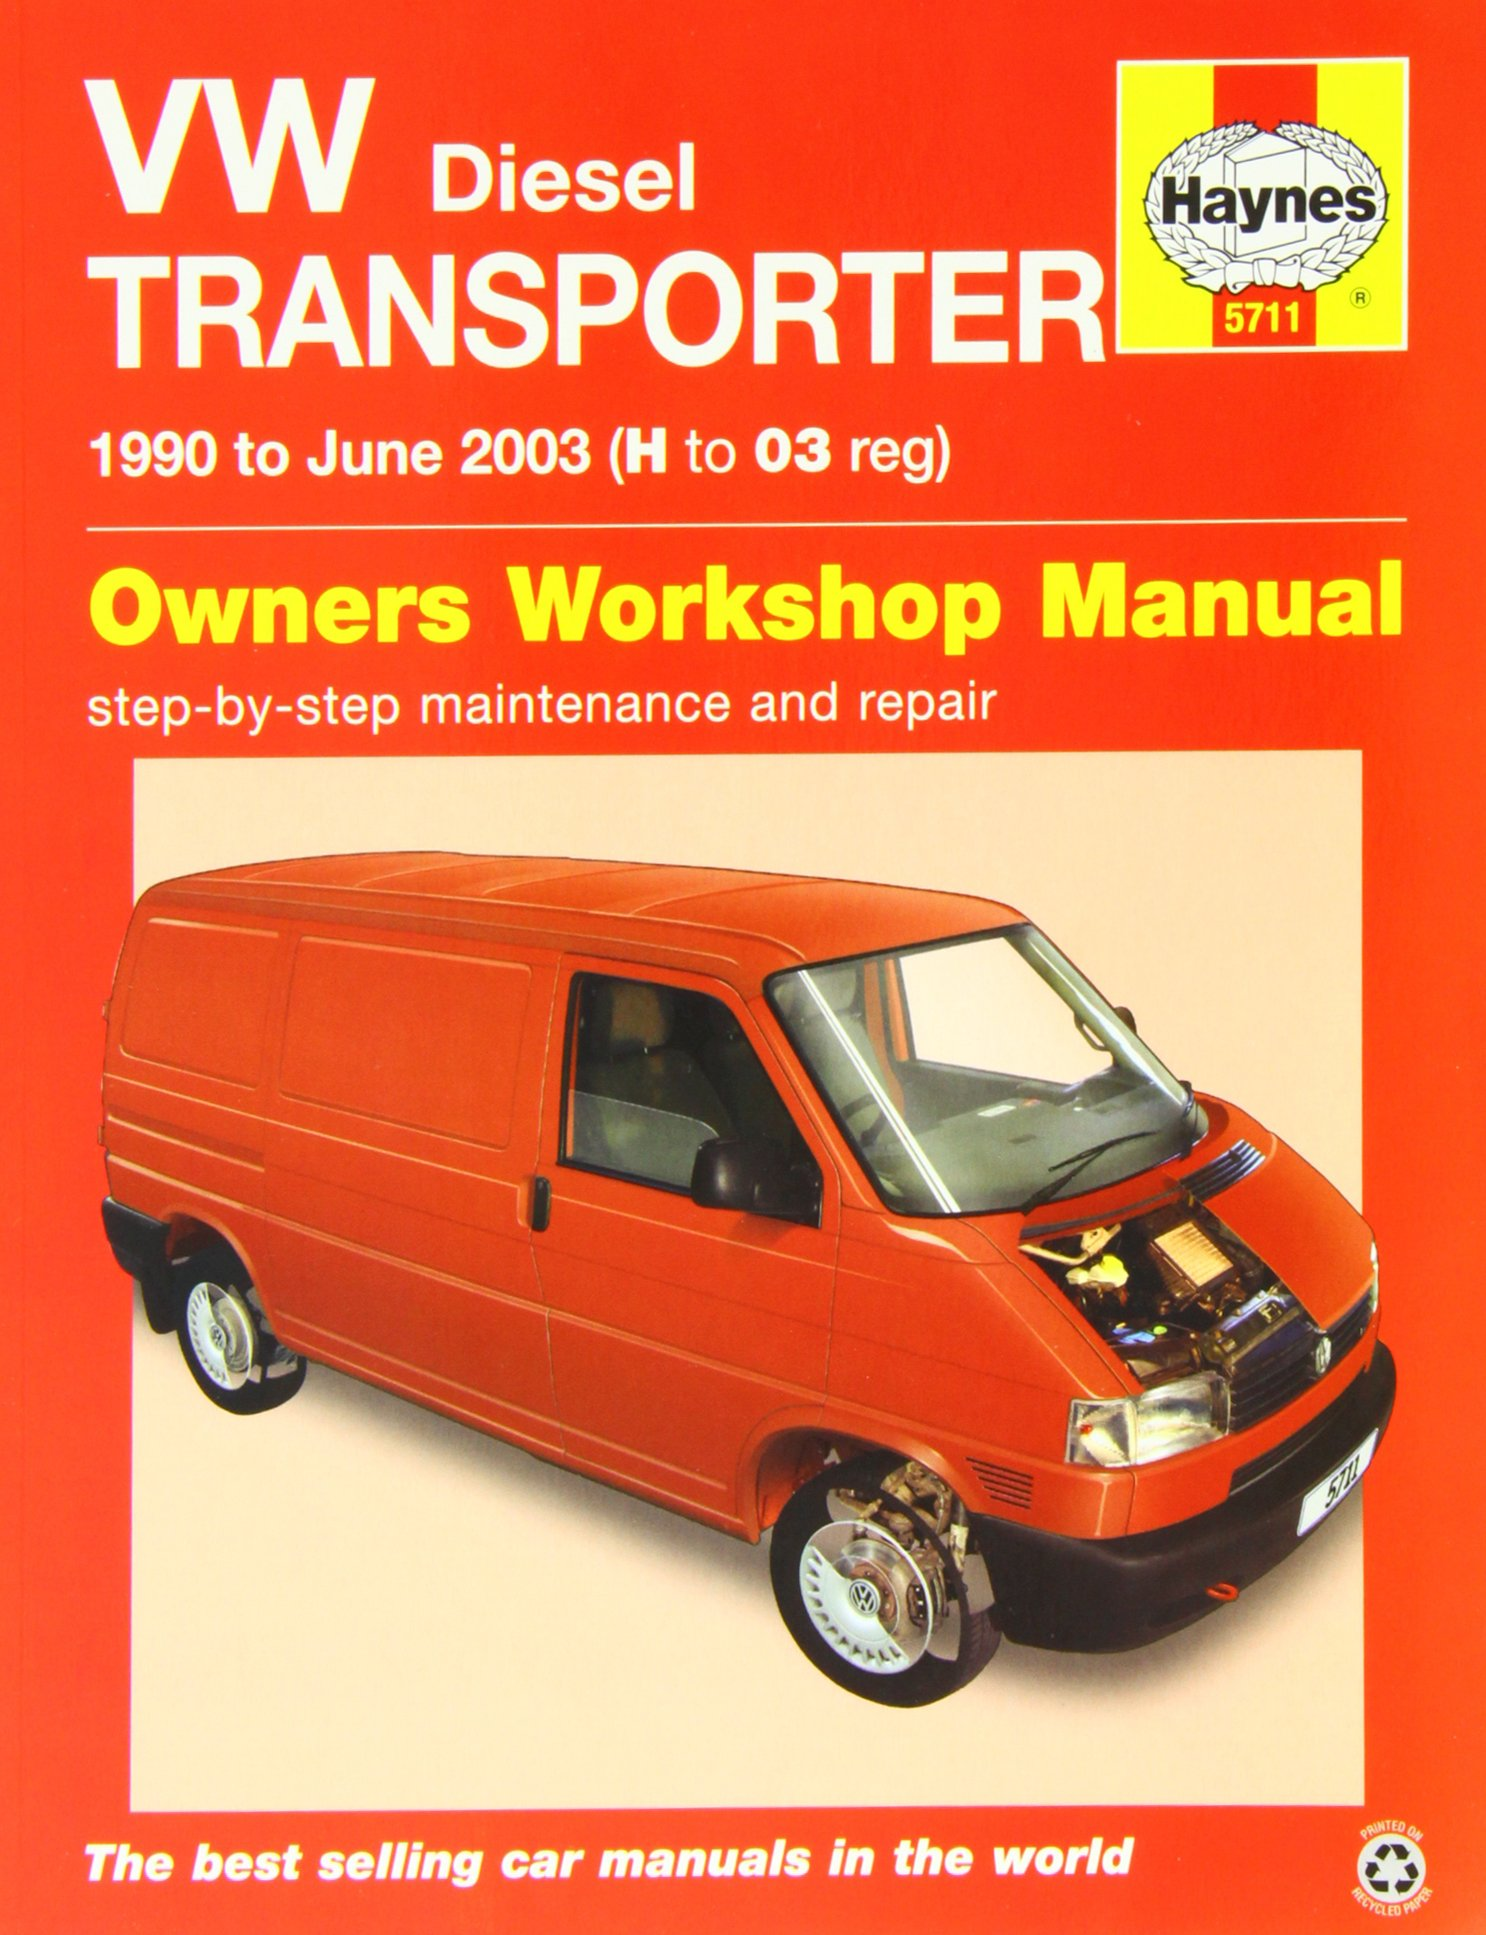 VW T4 Transporter Diesel (90 - June 03) Haynes Repair Manual: Amazon.co.uk:  Anon: 9780857337115: Books